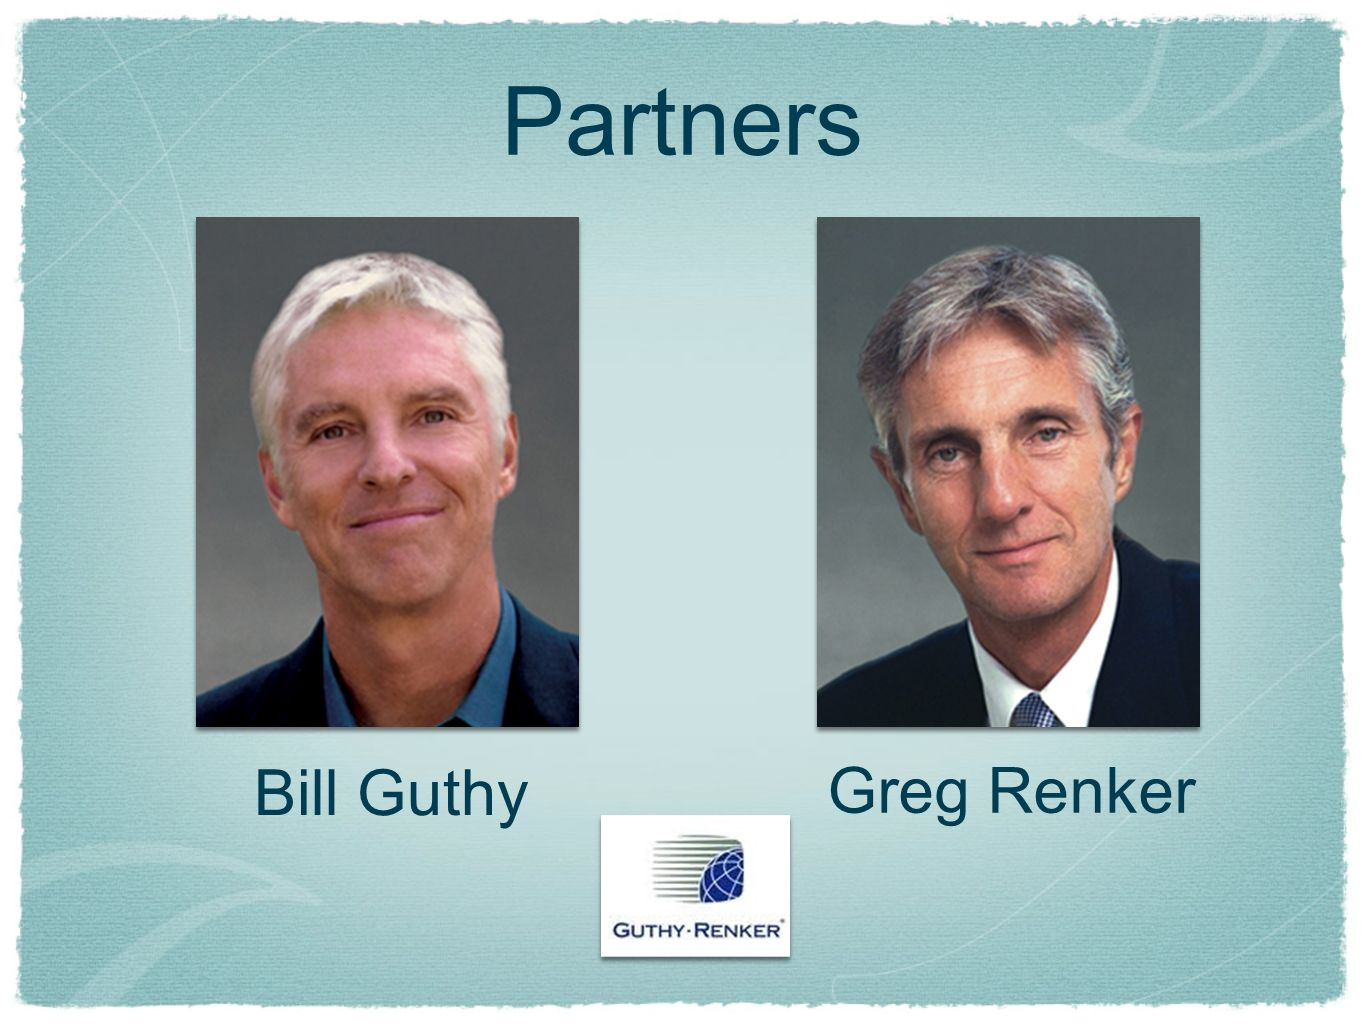 Partners Bill Guthy Greg Renker